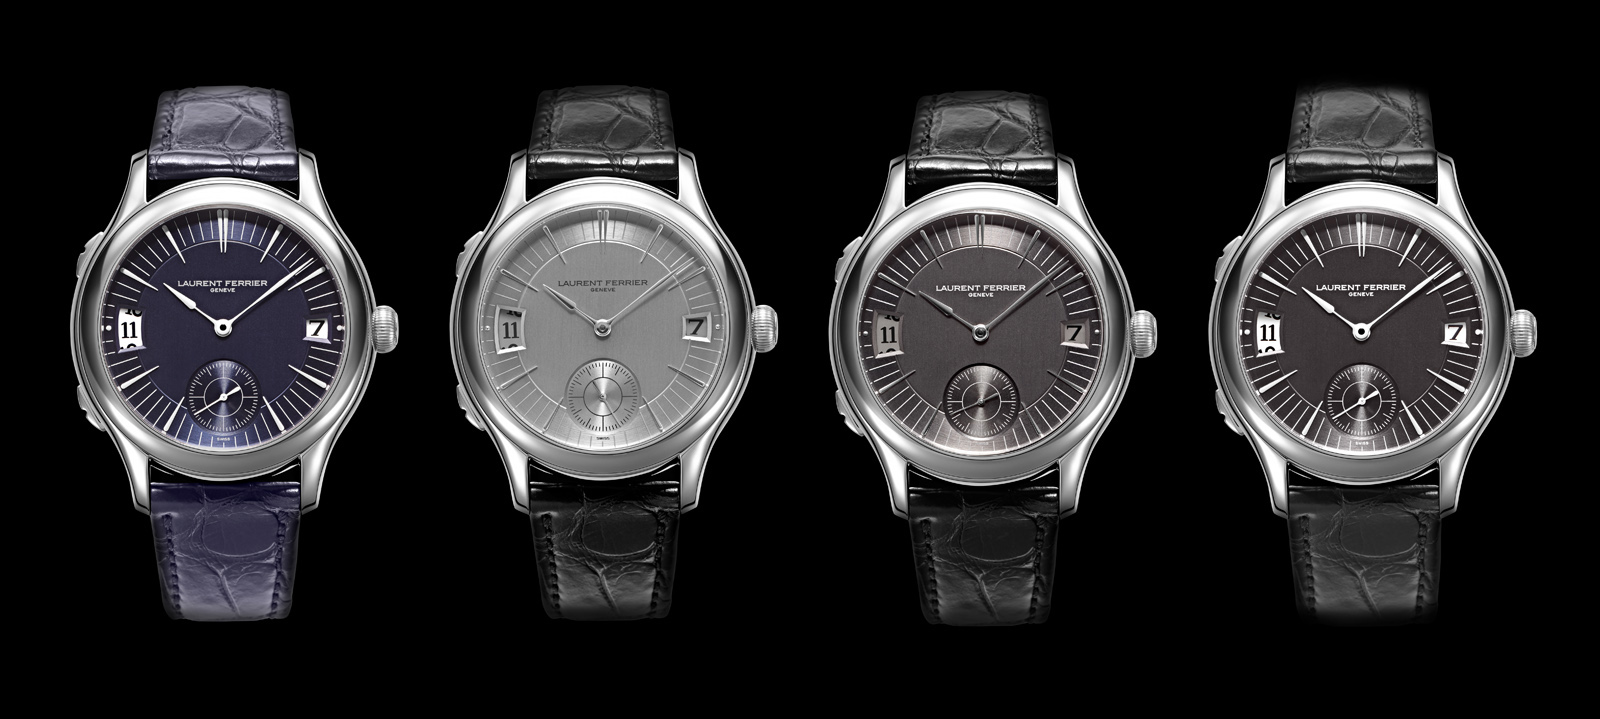 Laurent Ferrier Galet Traveller variations 2